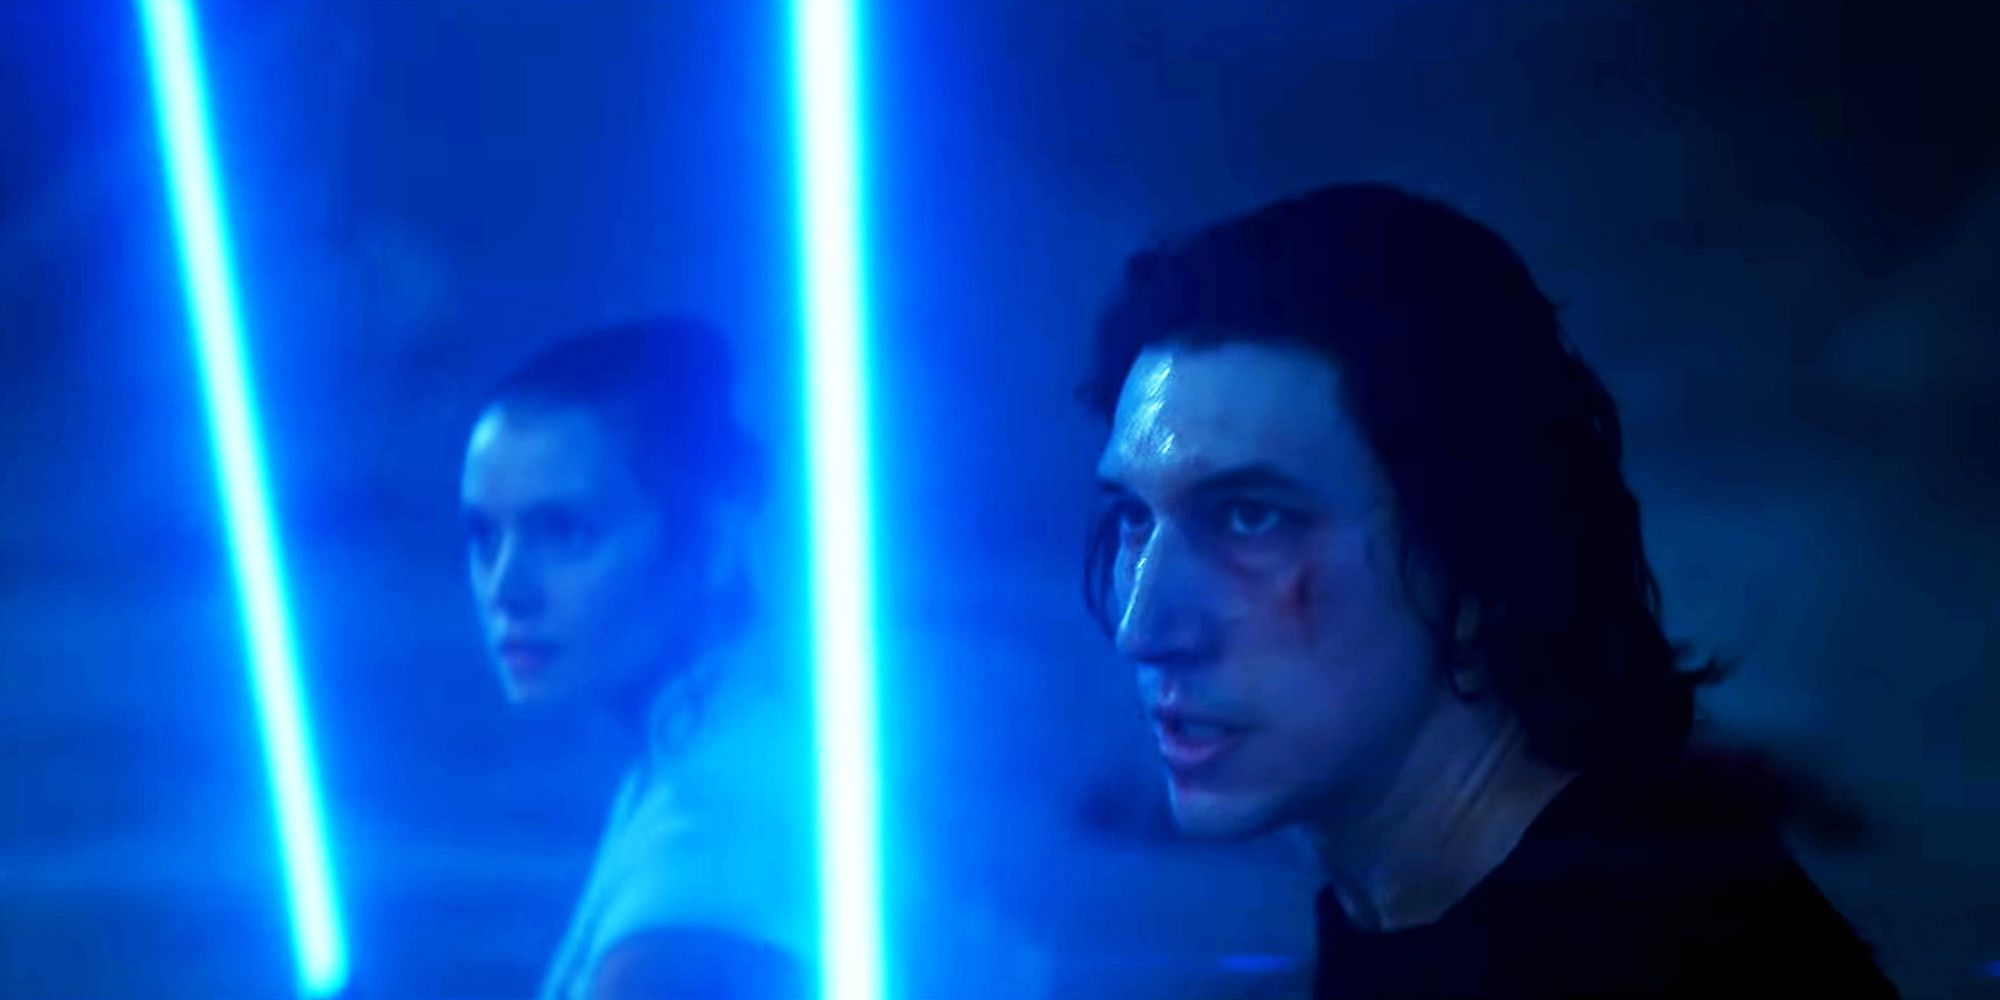 Watch Rey Kylo Ren Fight Palpatine In Rise Of Skywalker Hd Video